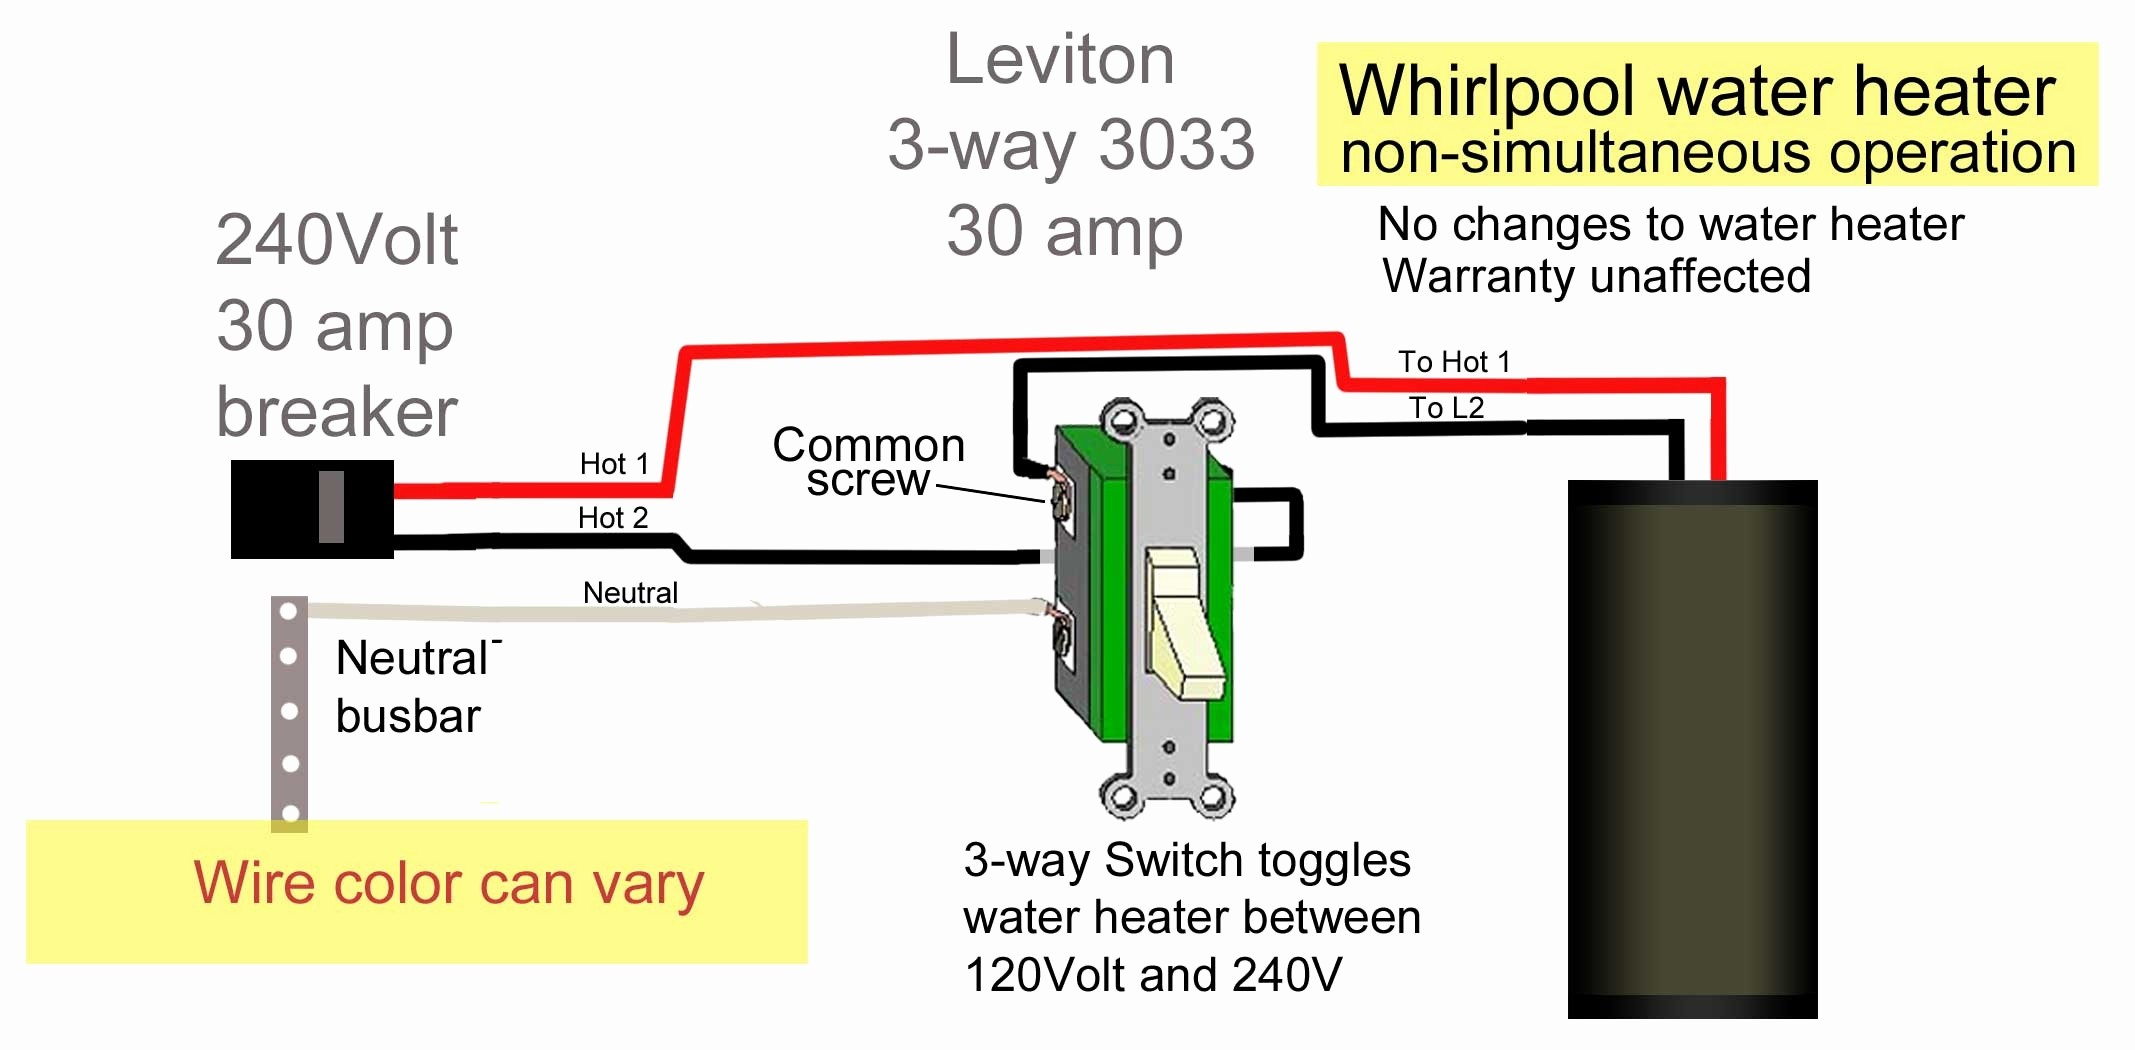 4 Wire 220 Volt Wiring Diagram Wiring Diagram 220v Wiring Diagram Elegant Beautiful L15 30p Of 4 Wire 220 Volt Wiring Diagram